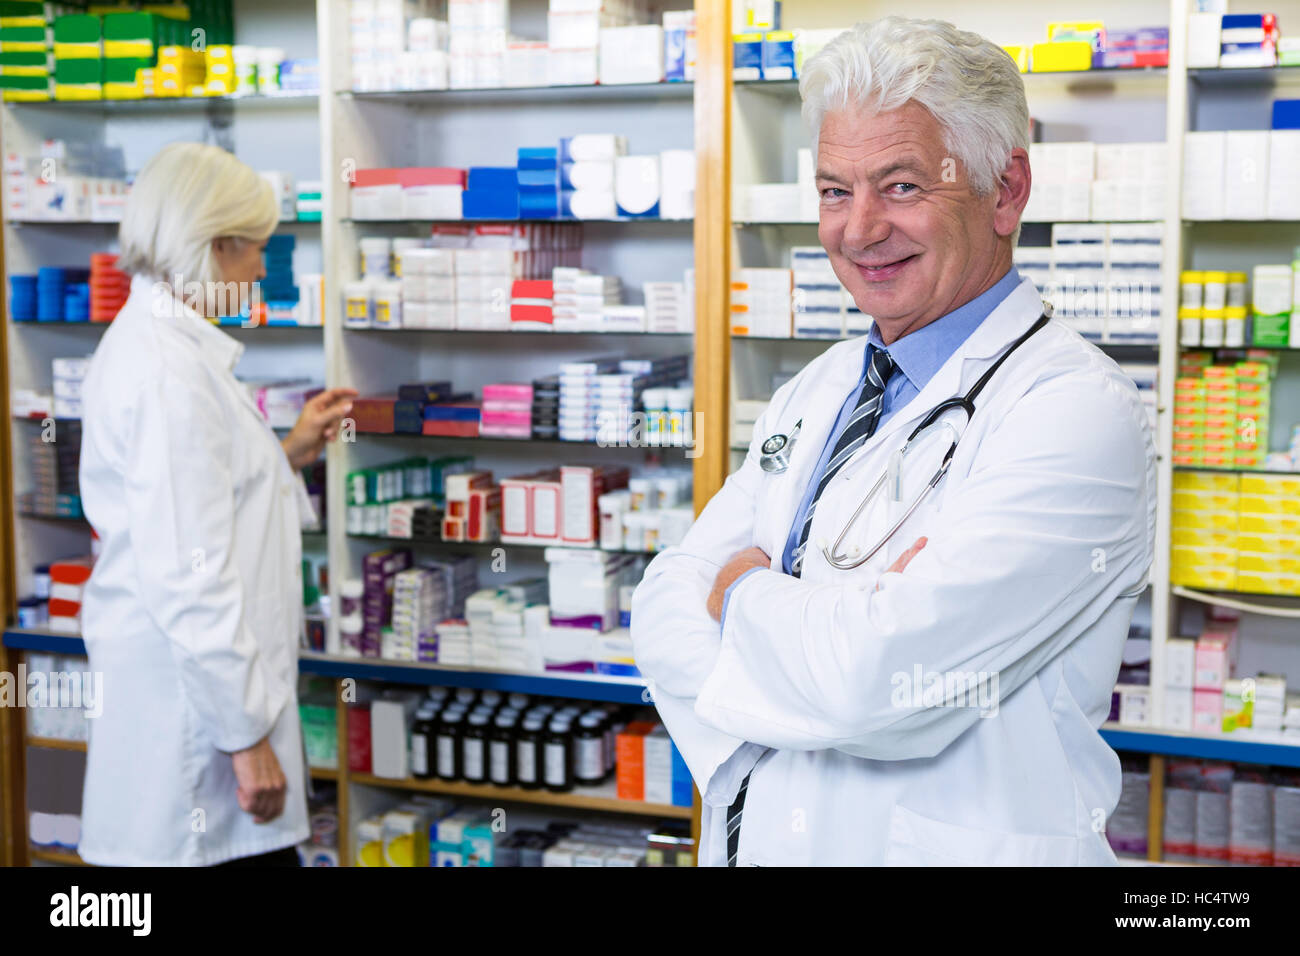 Pharmacist standing with arms crossed and co-worker checking medicines - Stock Image